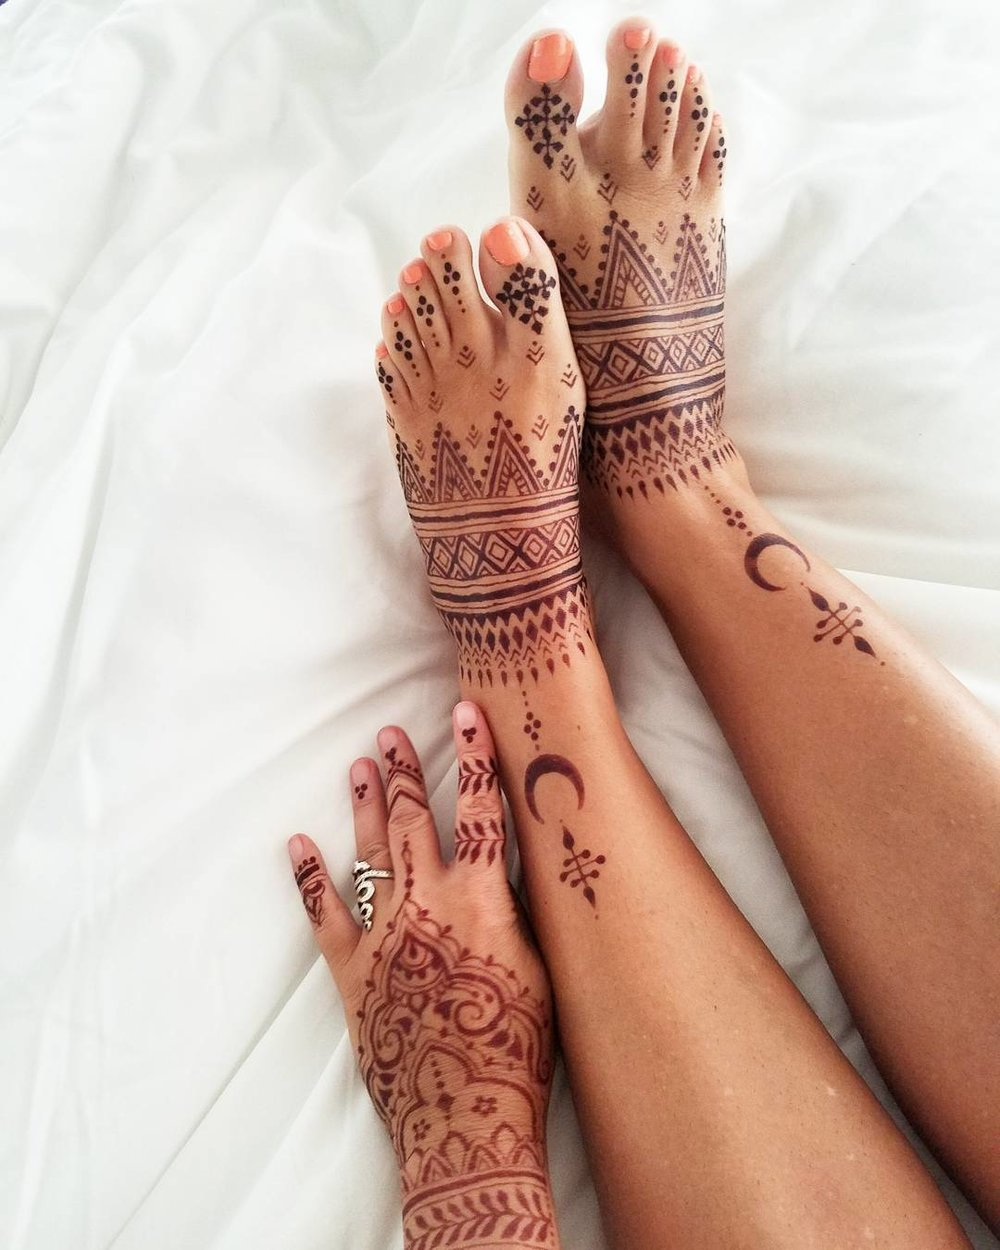 Henna on the hand, jagua-henna blend on the feet.